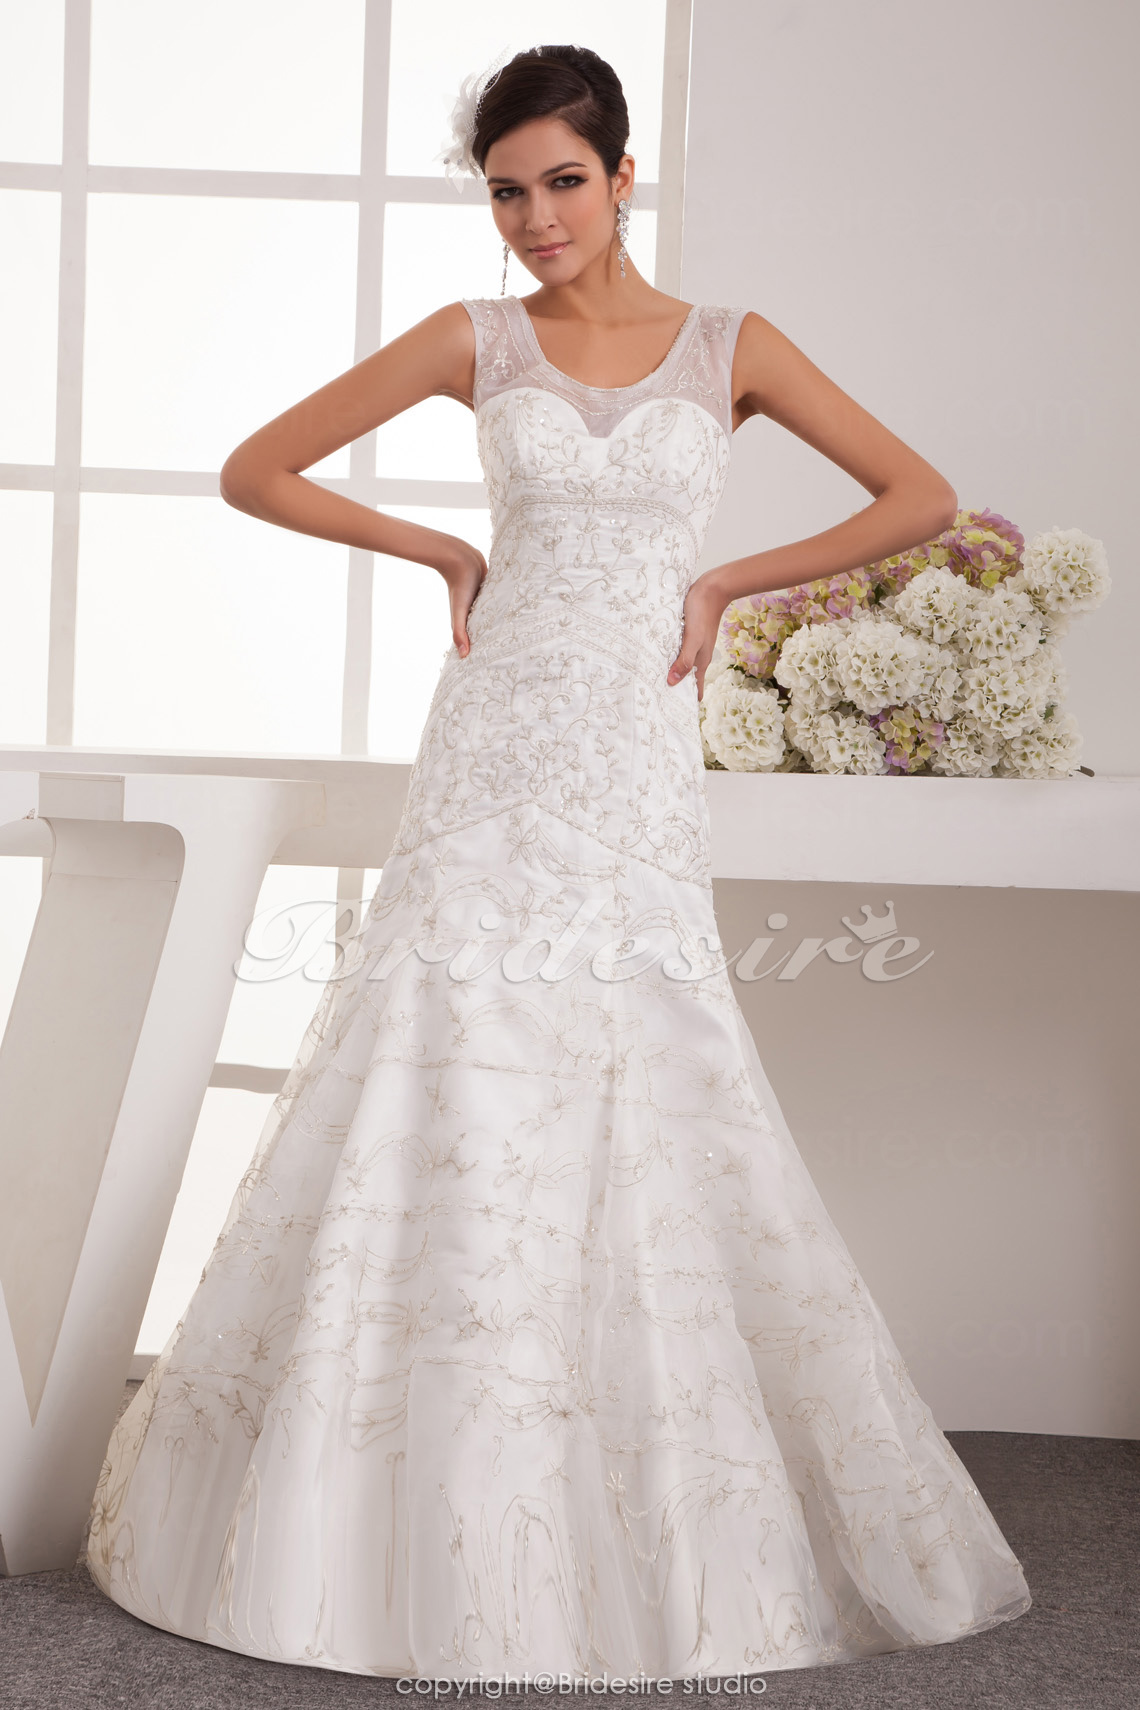 Trumpet/Mermaid Scoop Floor-length Sleeveless Satin Chiffon Wedding Dress